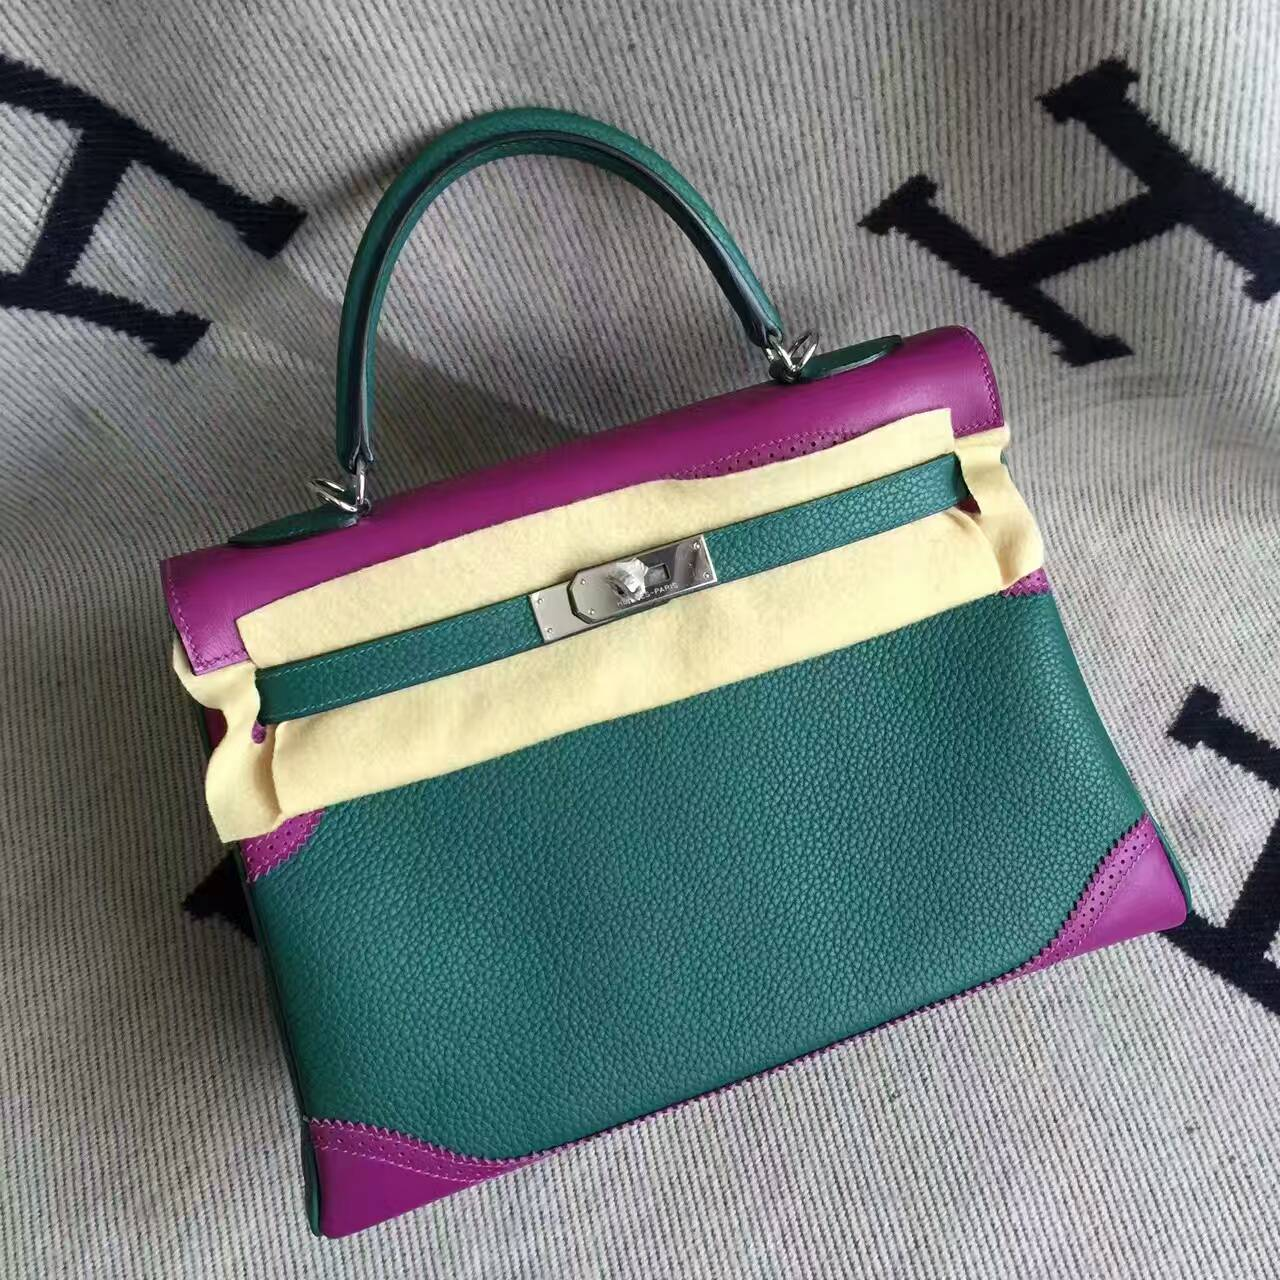 New Arrival Hermes Ghillie Kelly32CM Handbag in Malachite & Purple Togo Leather